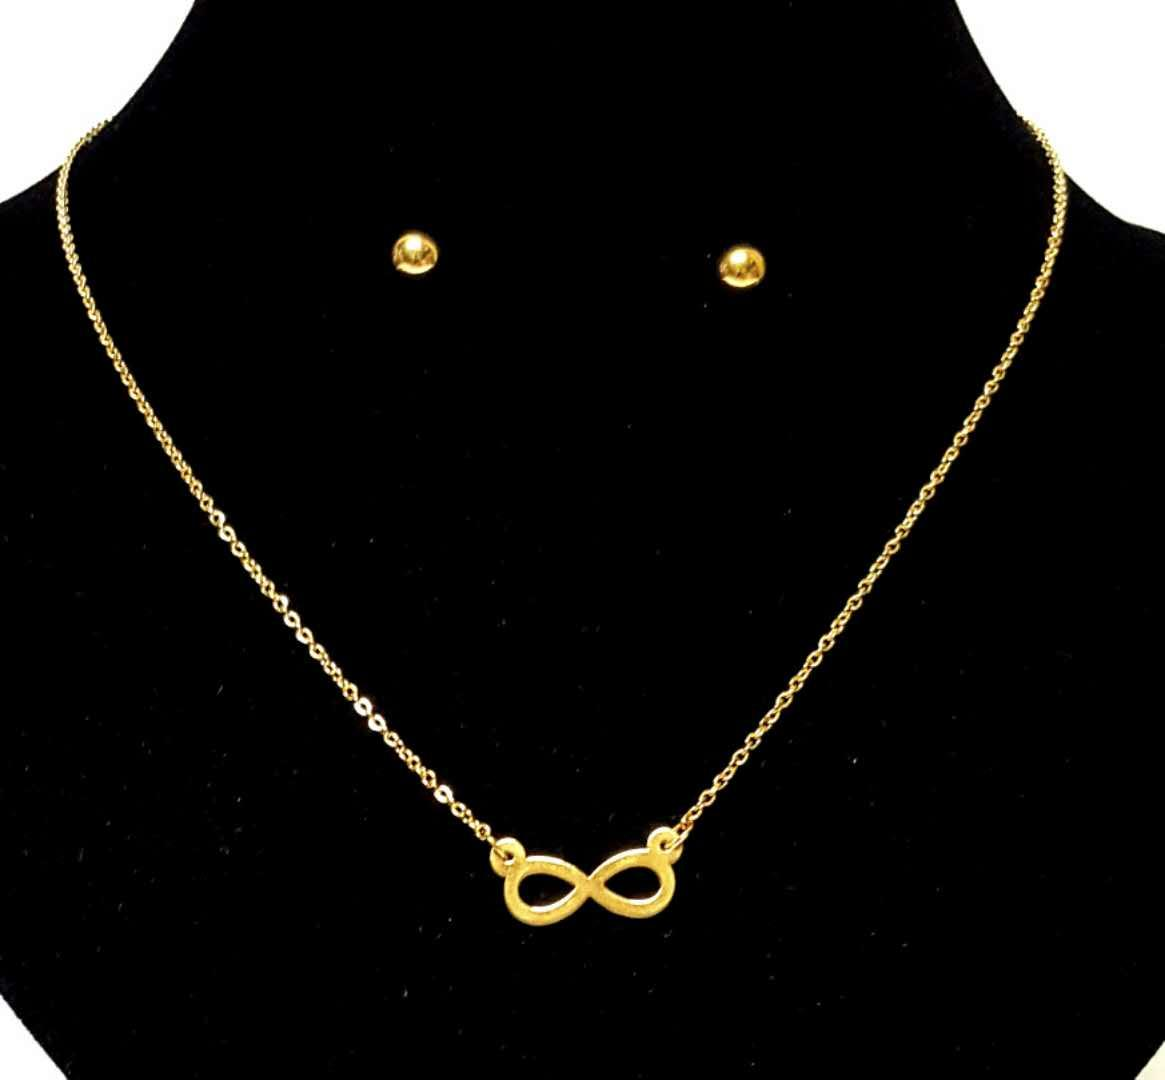 Stainless Gold Fashion Necklace and Earrings Jewelry Set (Infinity-Round)